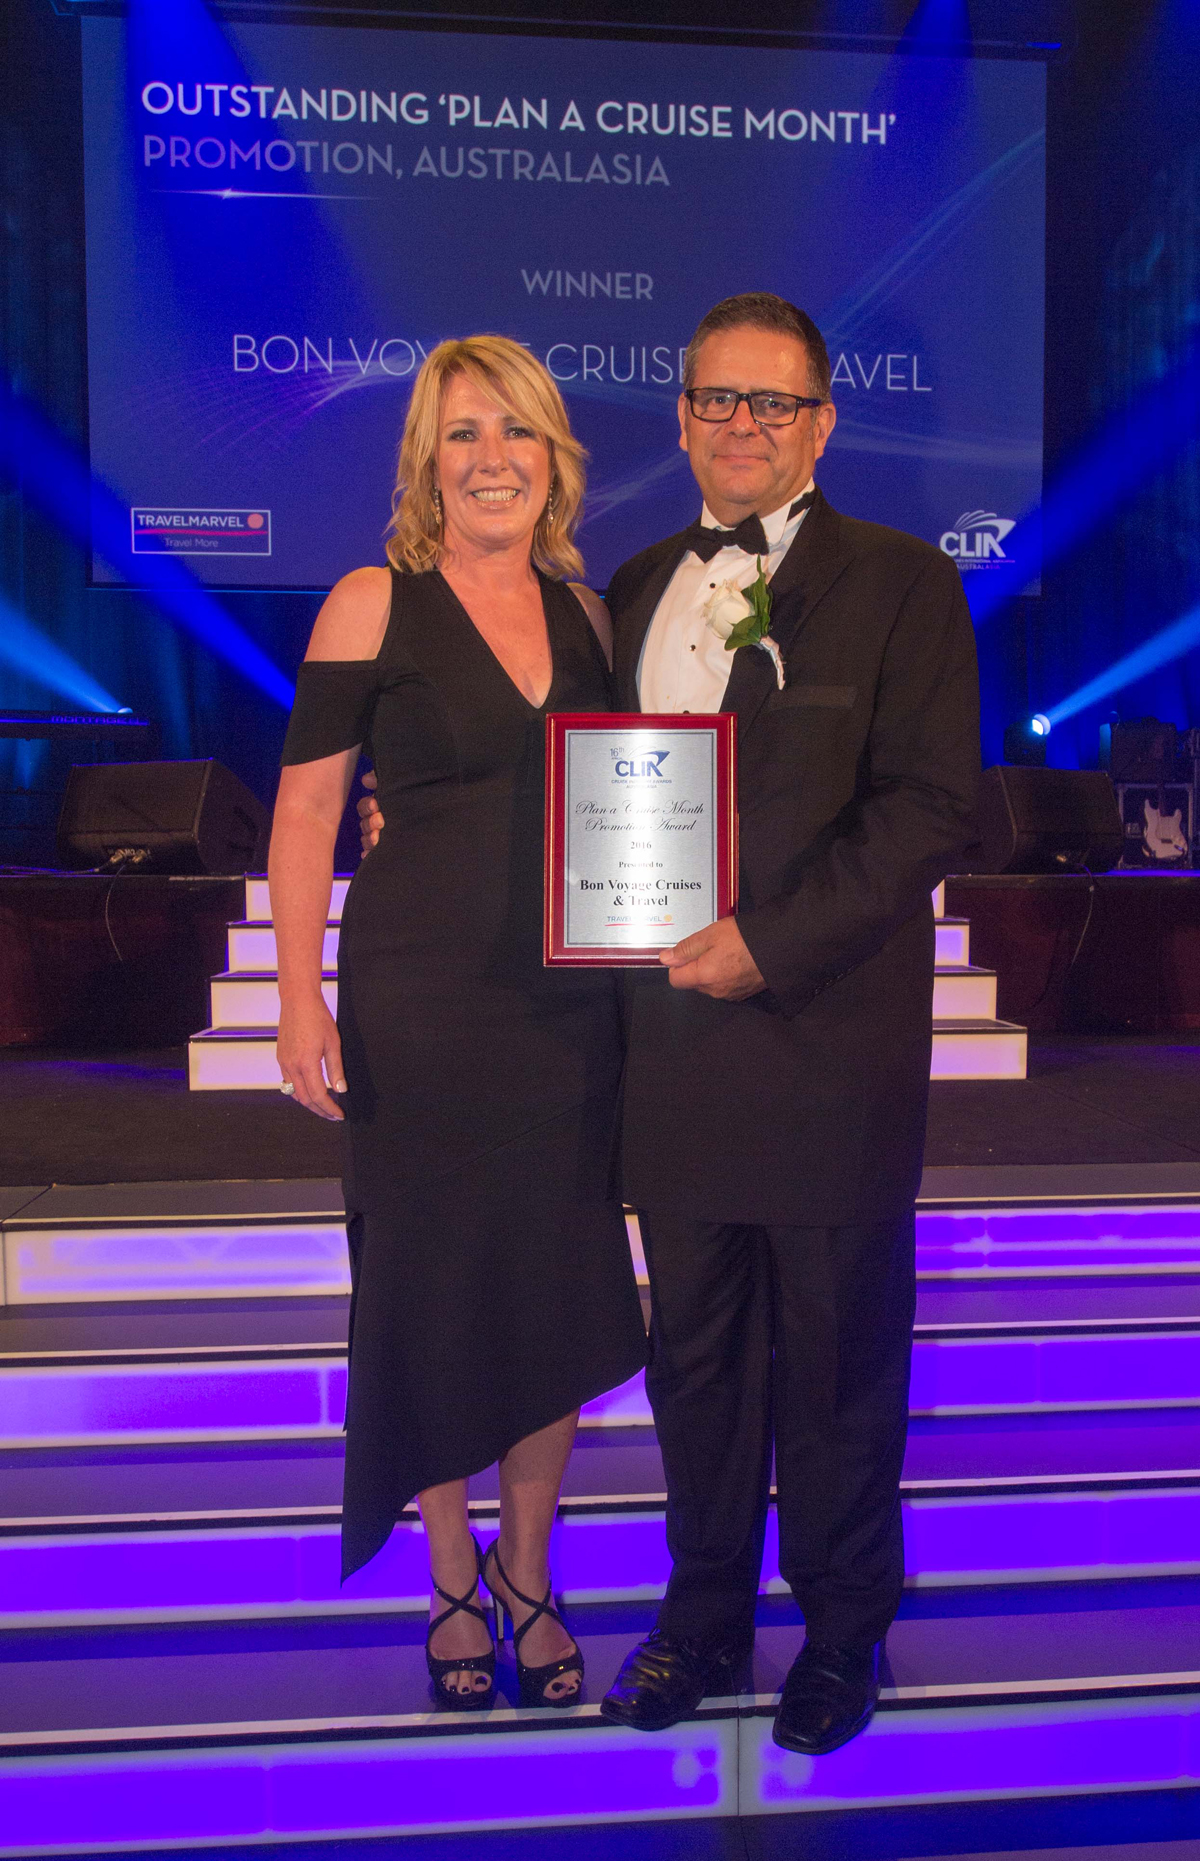 Plan A Cruise Month Promotion Winner Gerard Murphy from Bon Voyage Cruises Travel NZ with Travelmarvel's Deb Fox